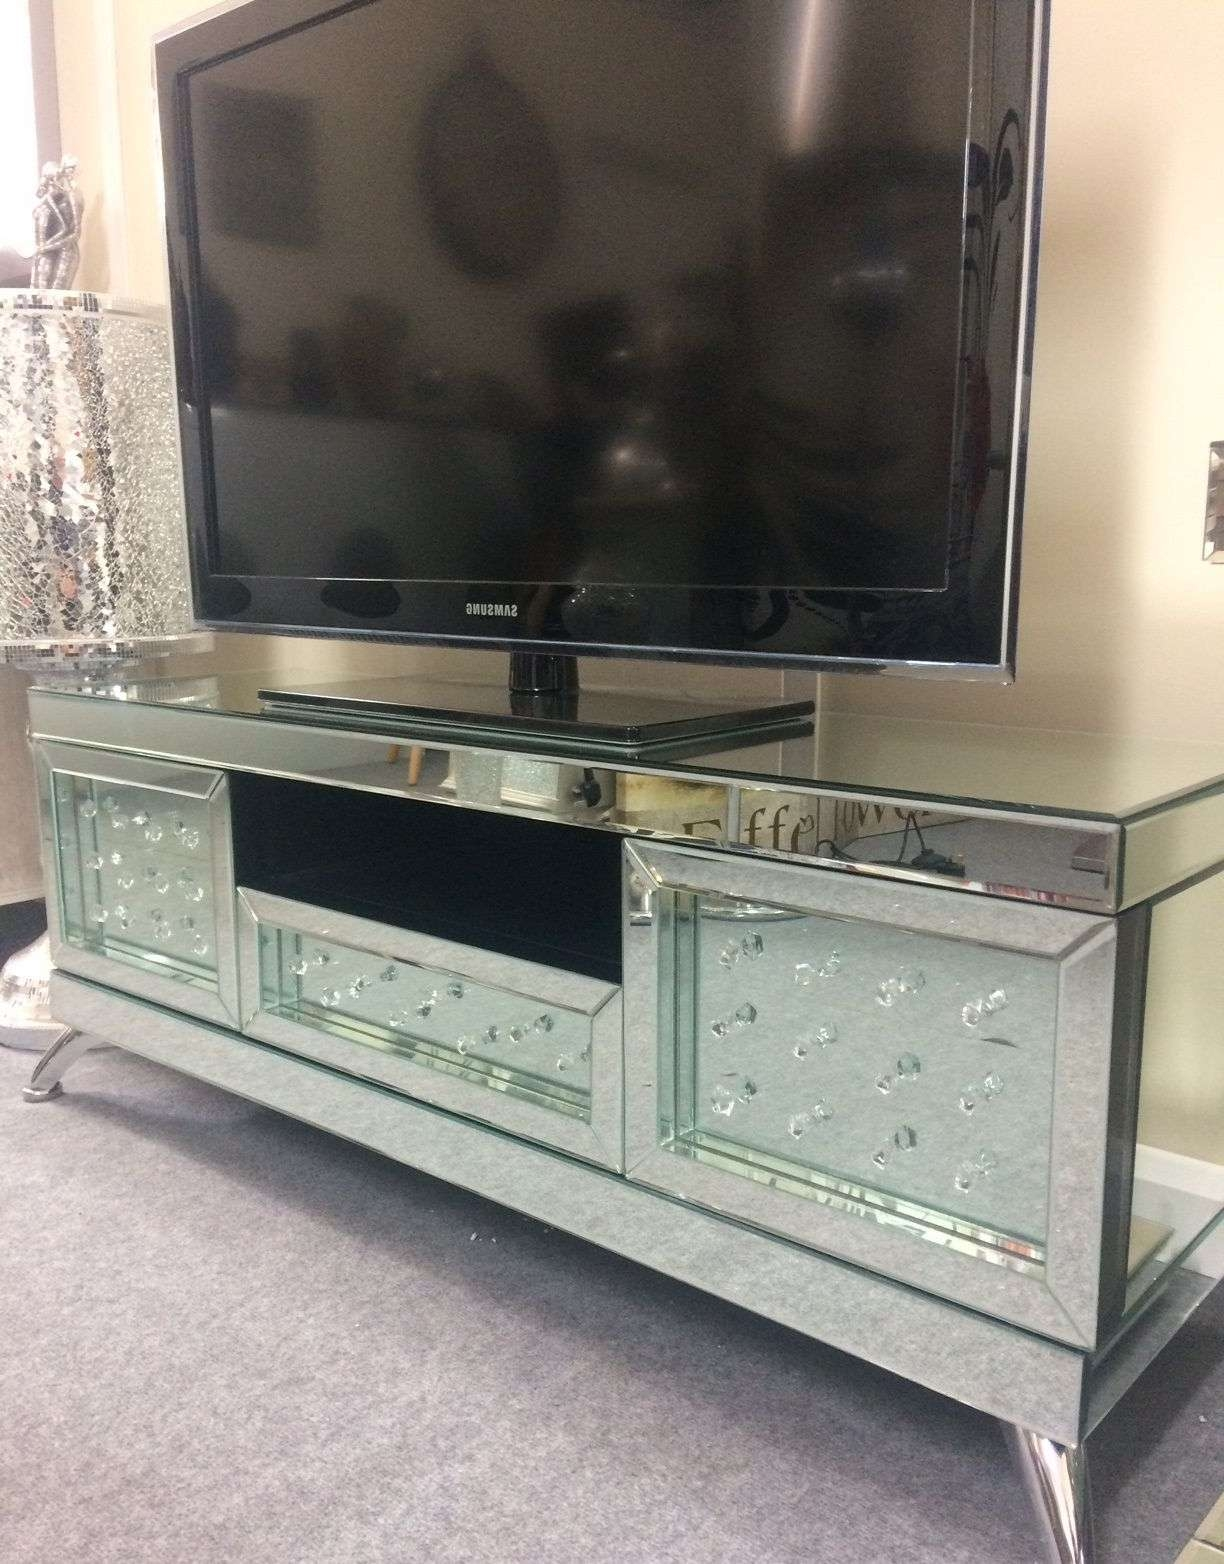 Inspirational Mirrored Tv Stands 65 About Remodel Home Design Regarding Mirrored Tv Cabinets Furniture (Gallery 16 of 20)